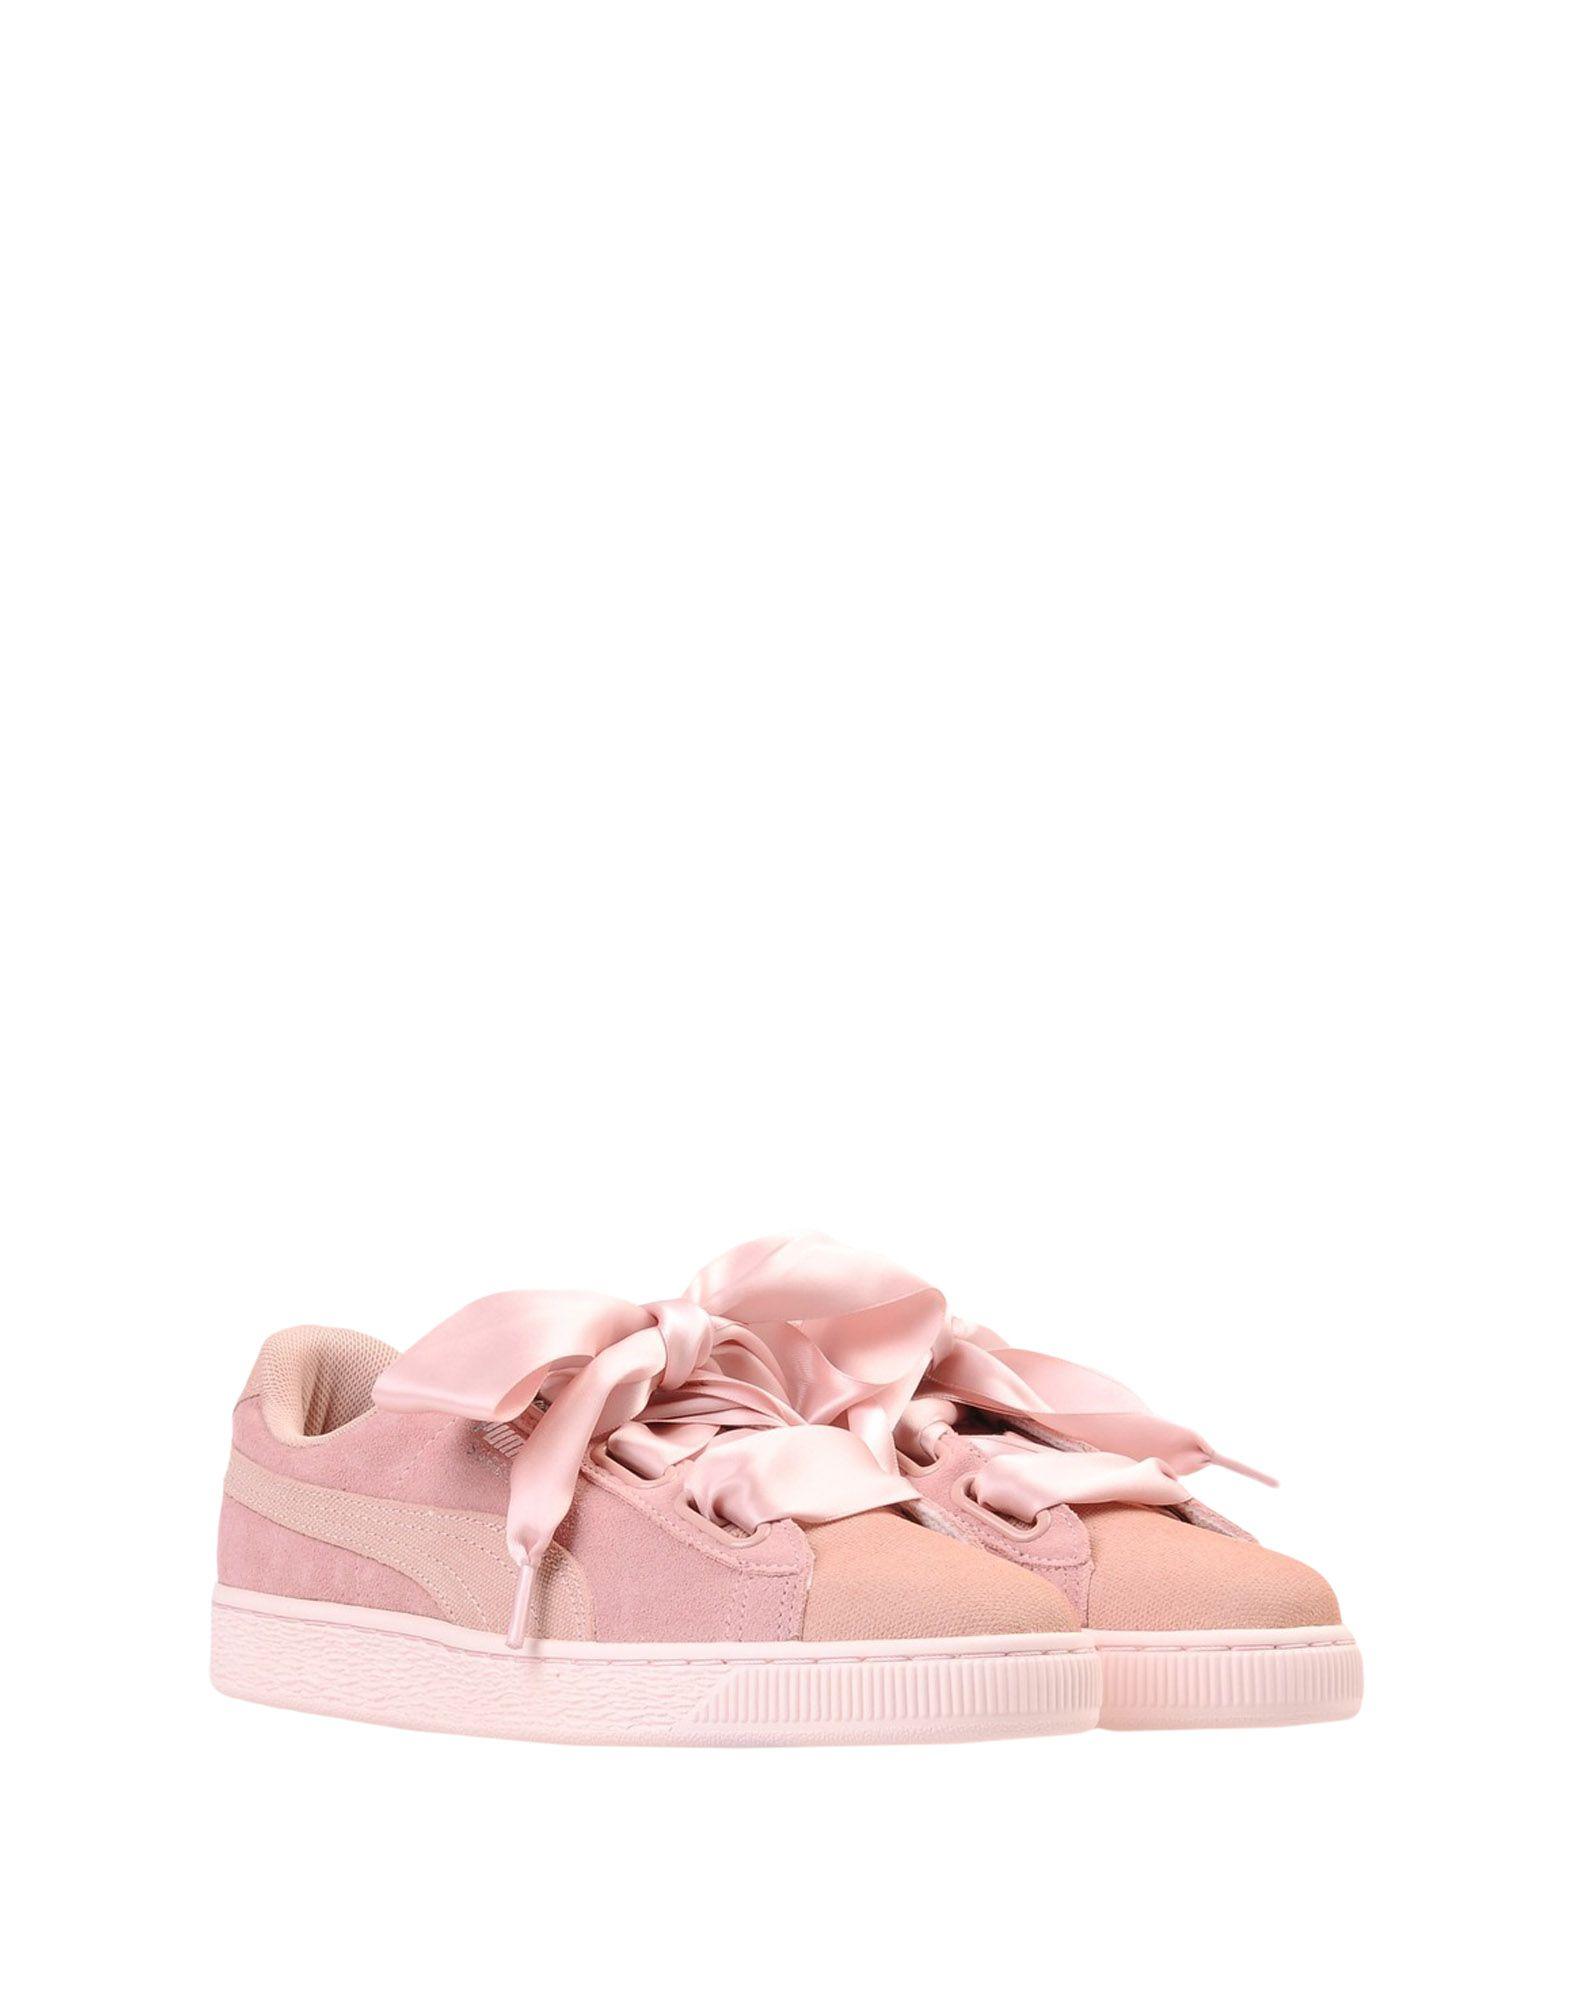 Sneakers Puma Suede Heart Pebble Wns - Femme - Sneakers Puma sur